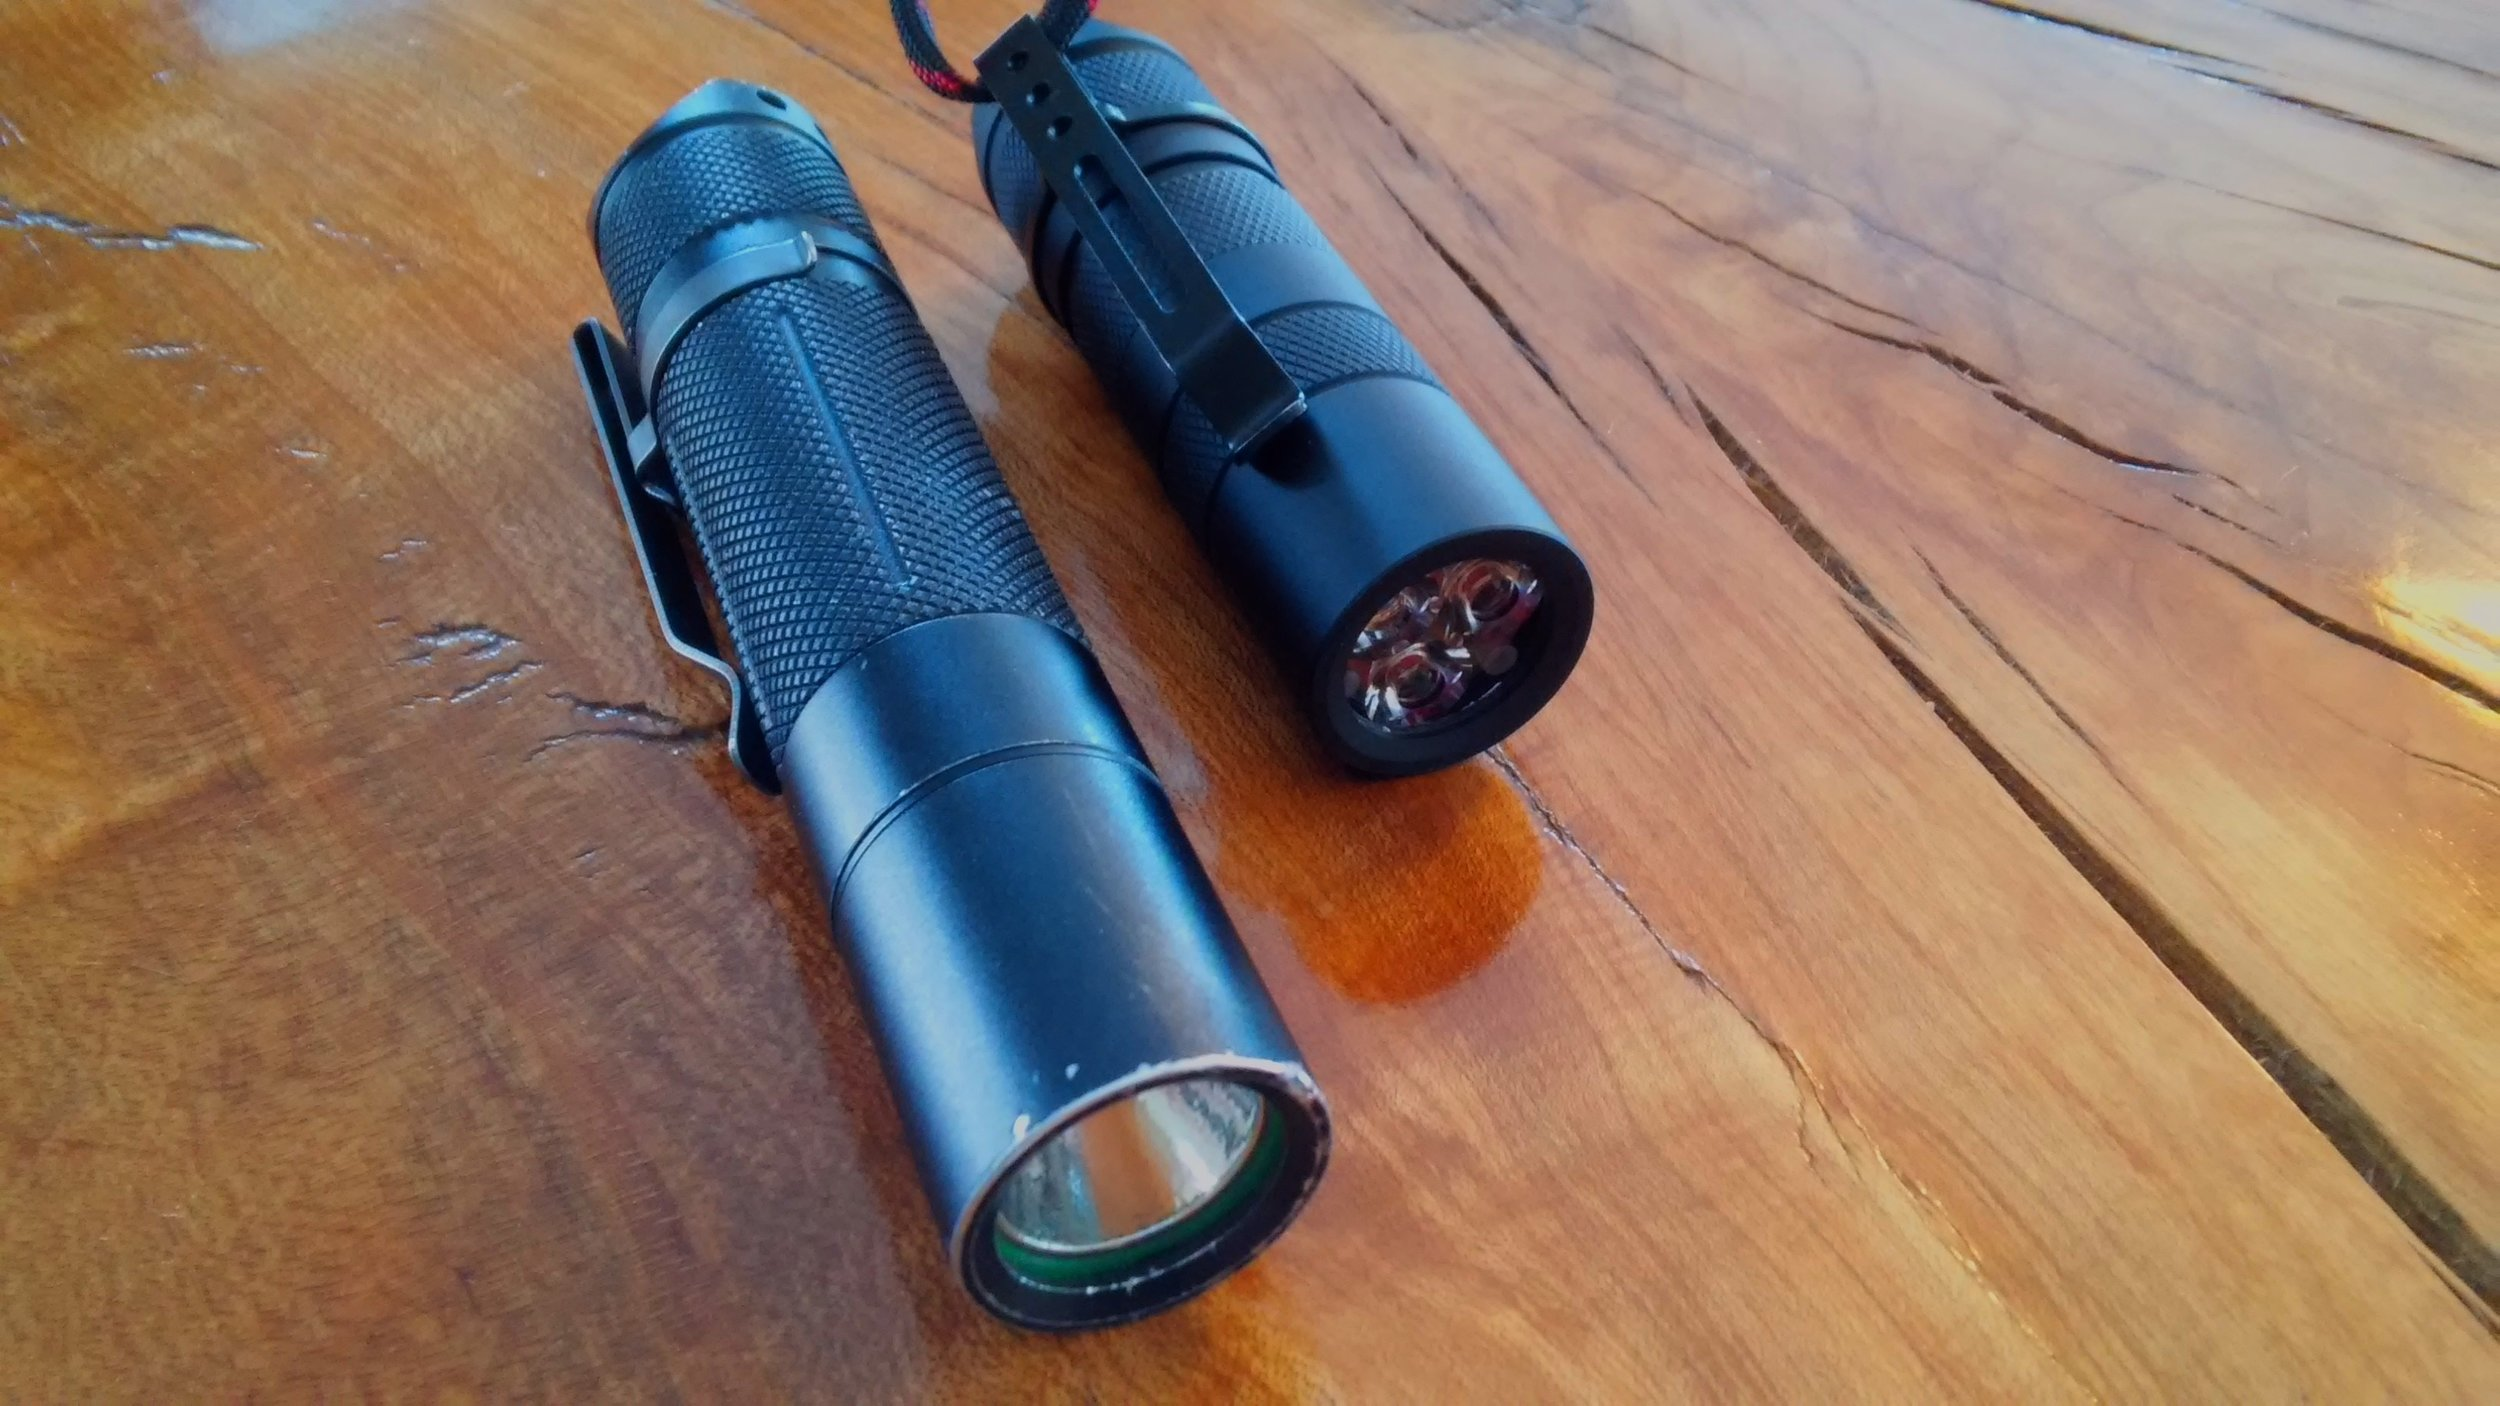 Convoy S2 w/ 18350 battery tube, but holding an 18500, Astrolux S1/BLF A6 at left for size.